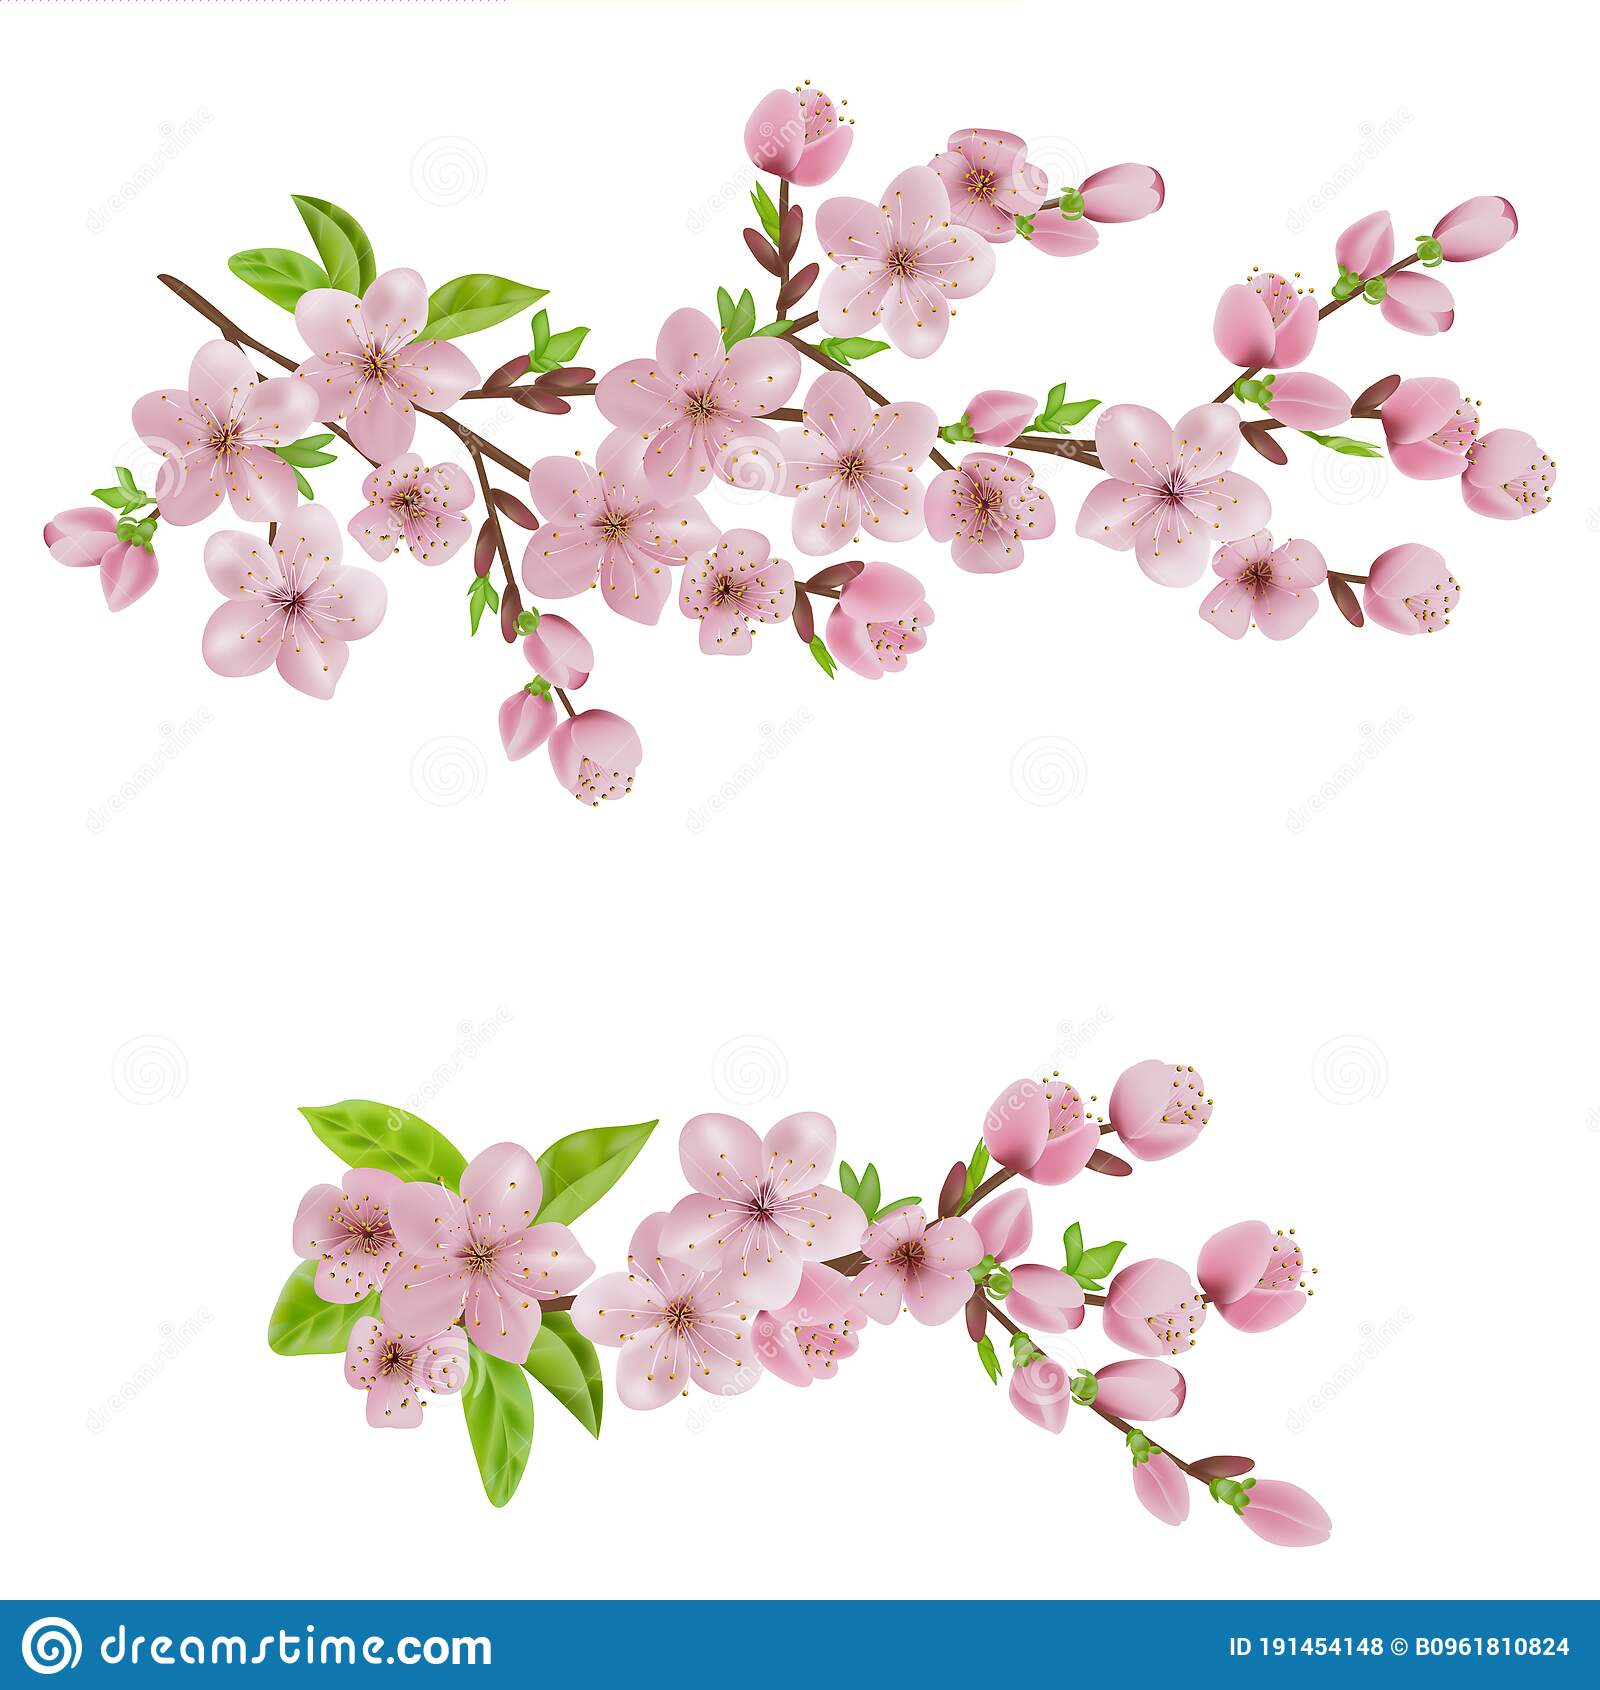 Cherry Blossom Sakura Branch With Pink Flowers For Invitation Sales Packaging Cosmetics Perfume Stock Photo Image Of Background Nature 191454148